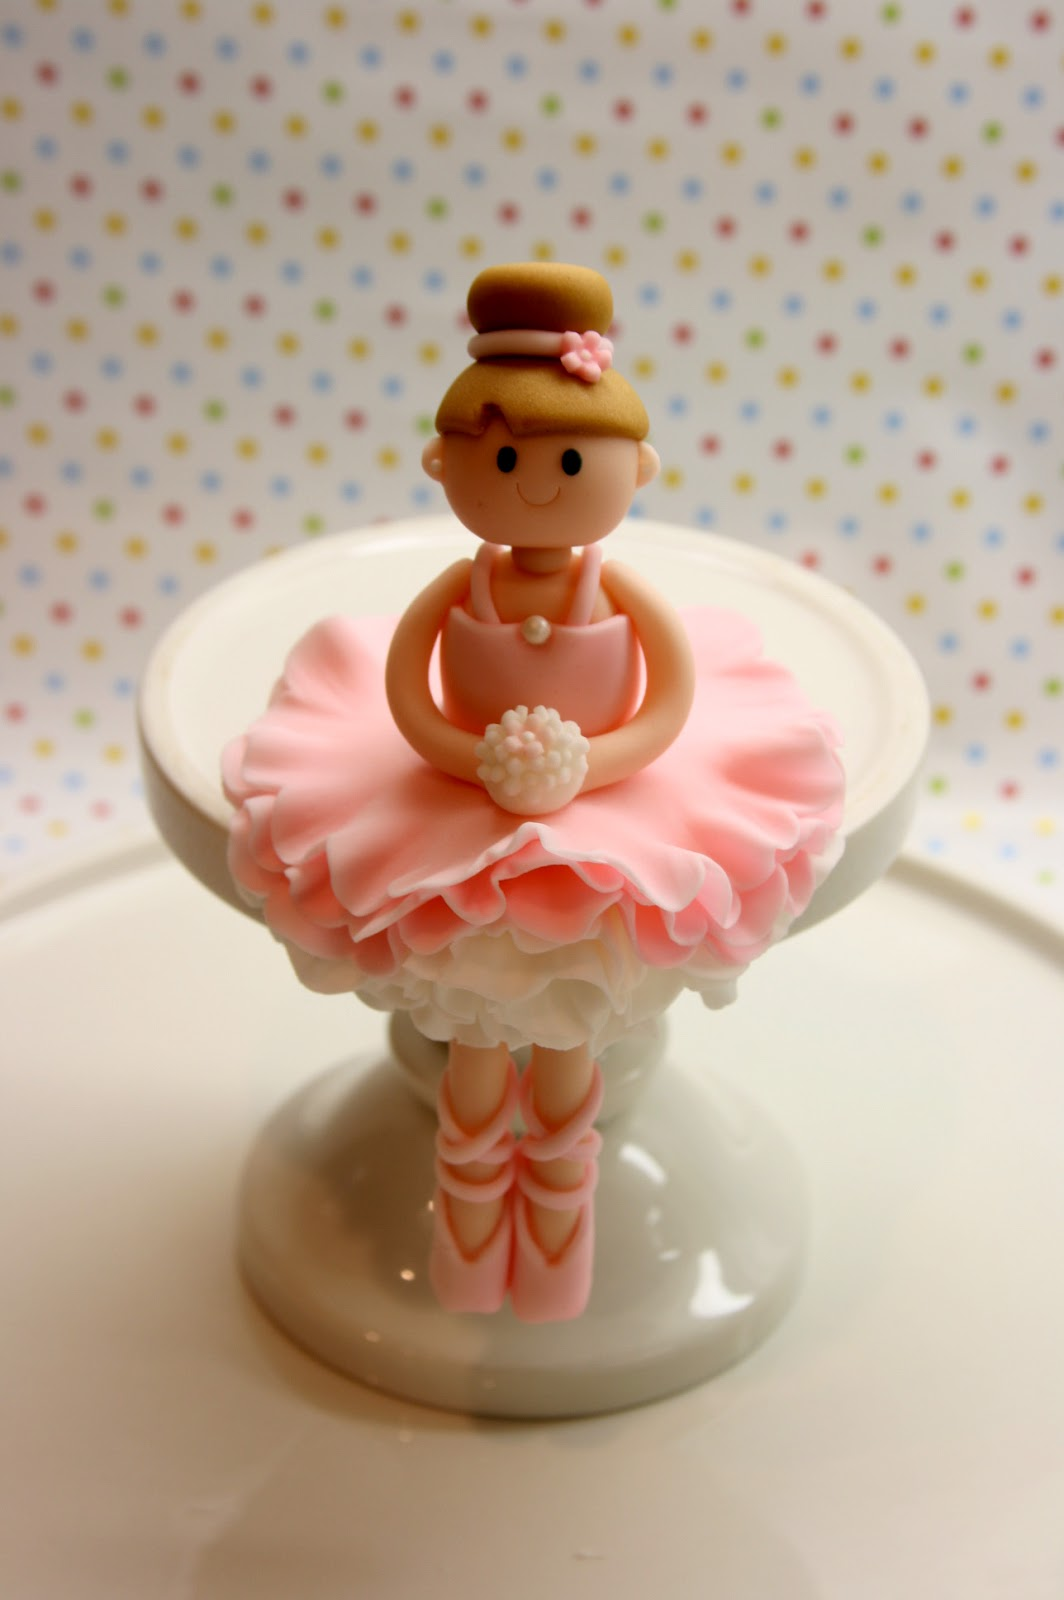 Cake Toppers Cake : Beautiful Kitchen: Ballerina Cake Topper for Allison